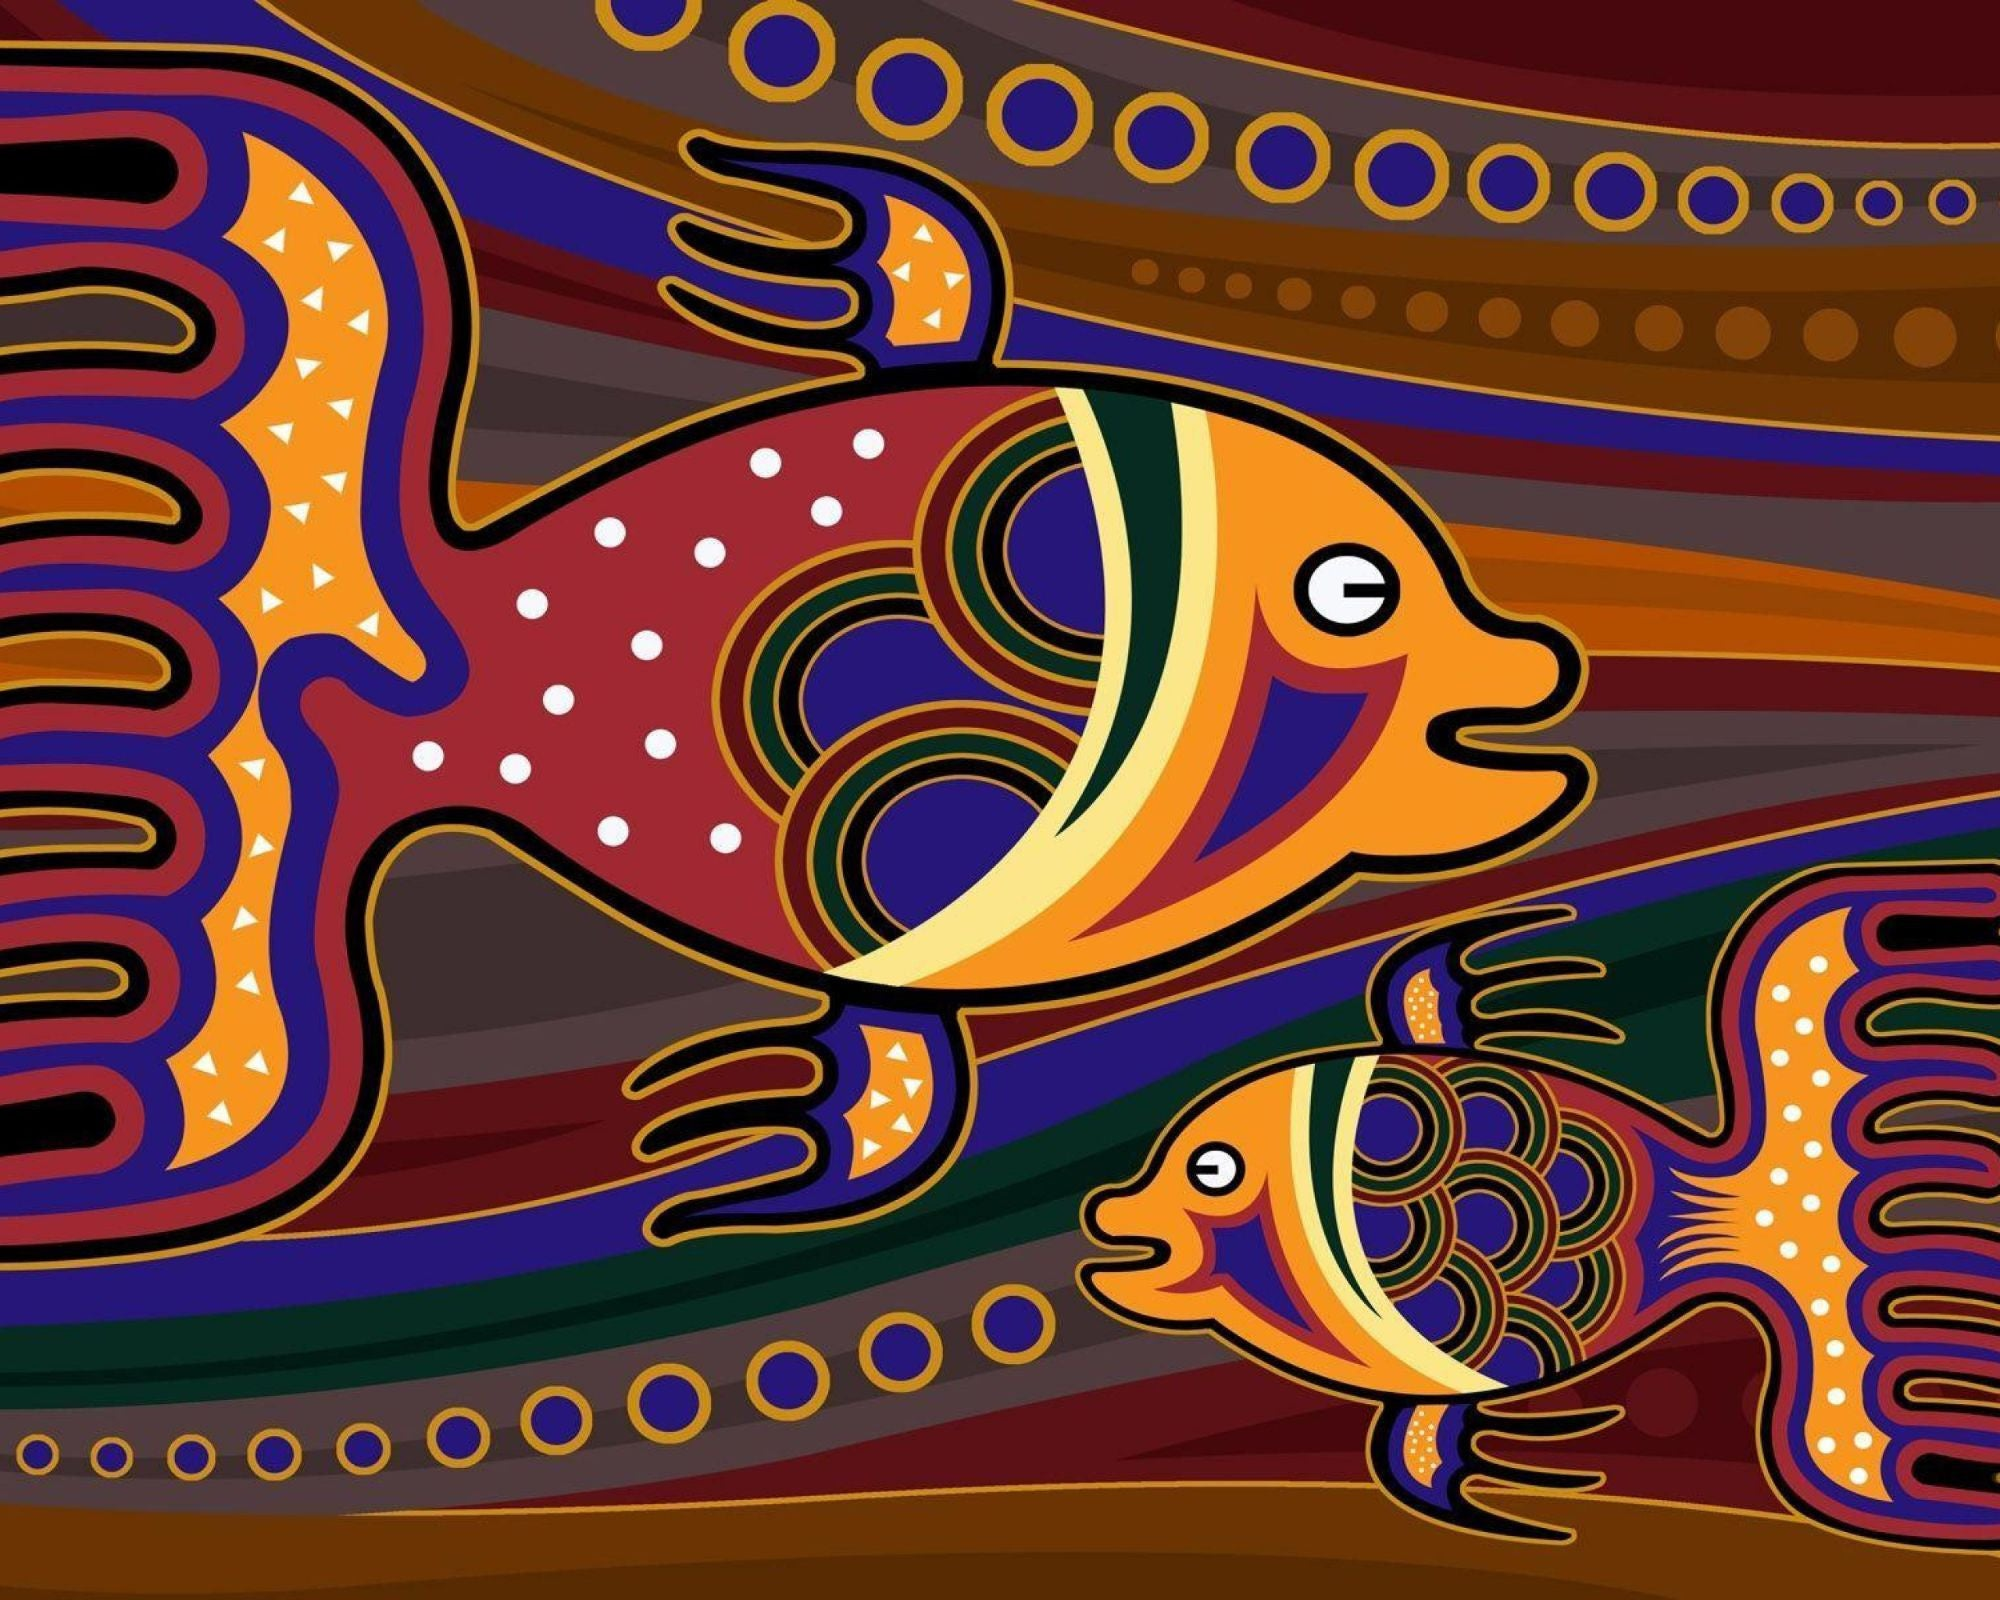 Colorful Fish Art by Hamid Raza | Buy Posters, Frames, Canvas ...